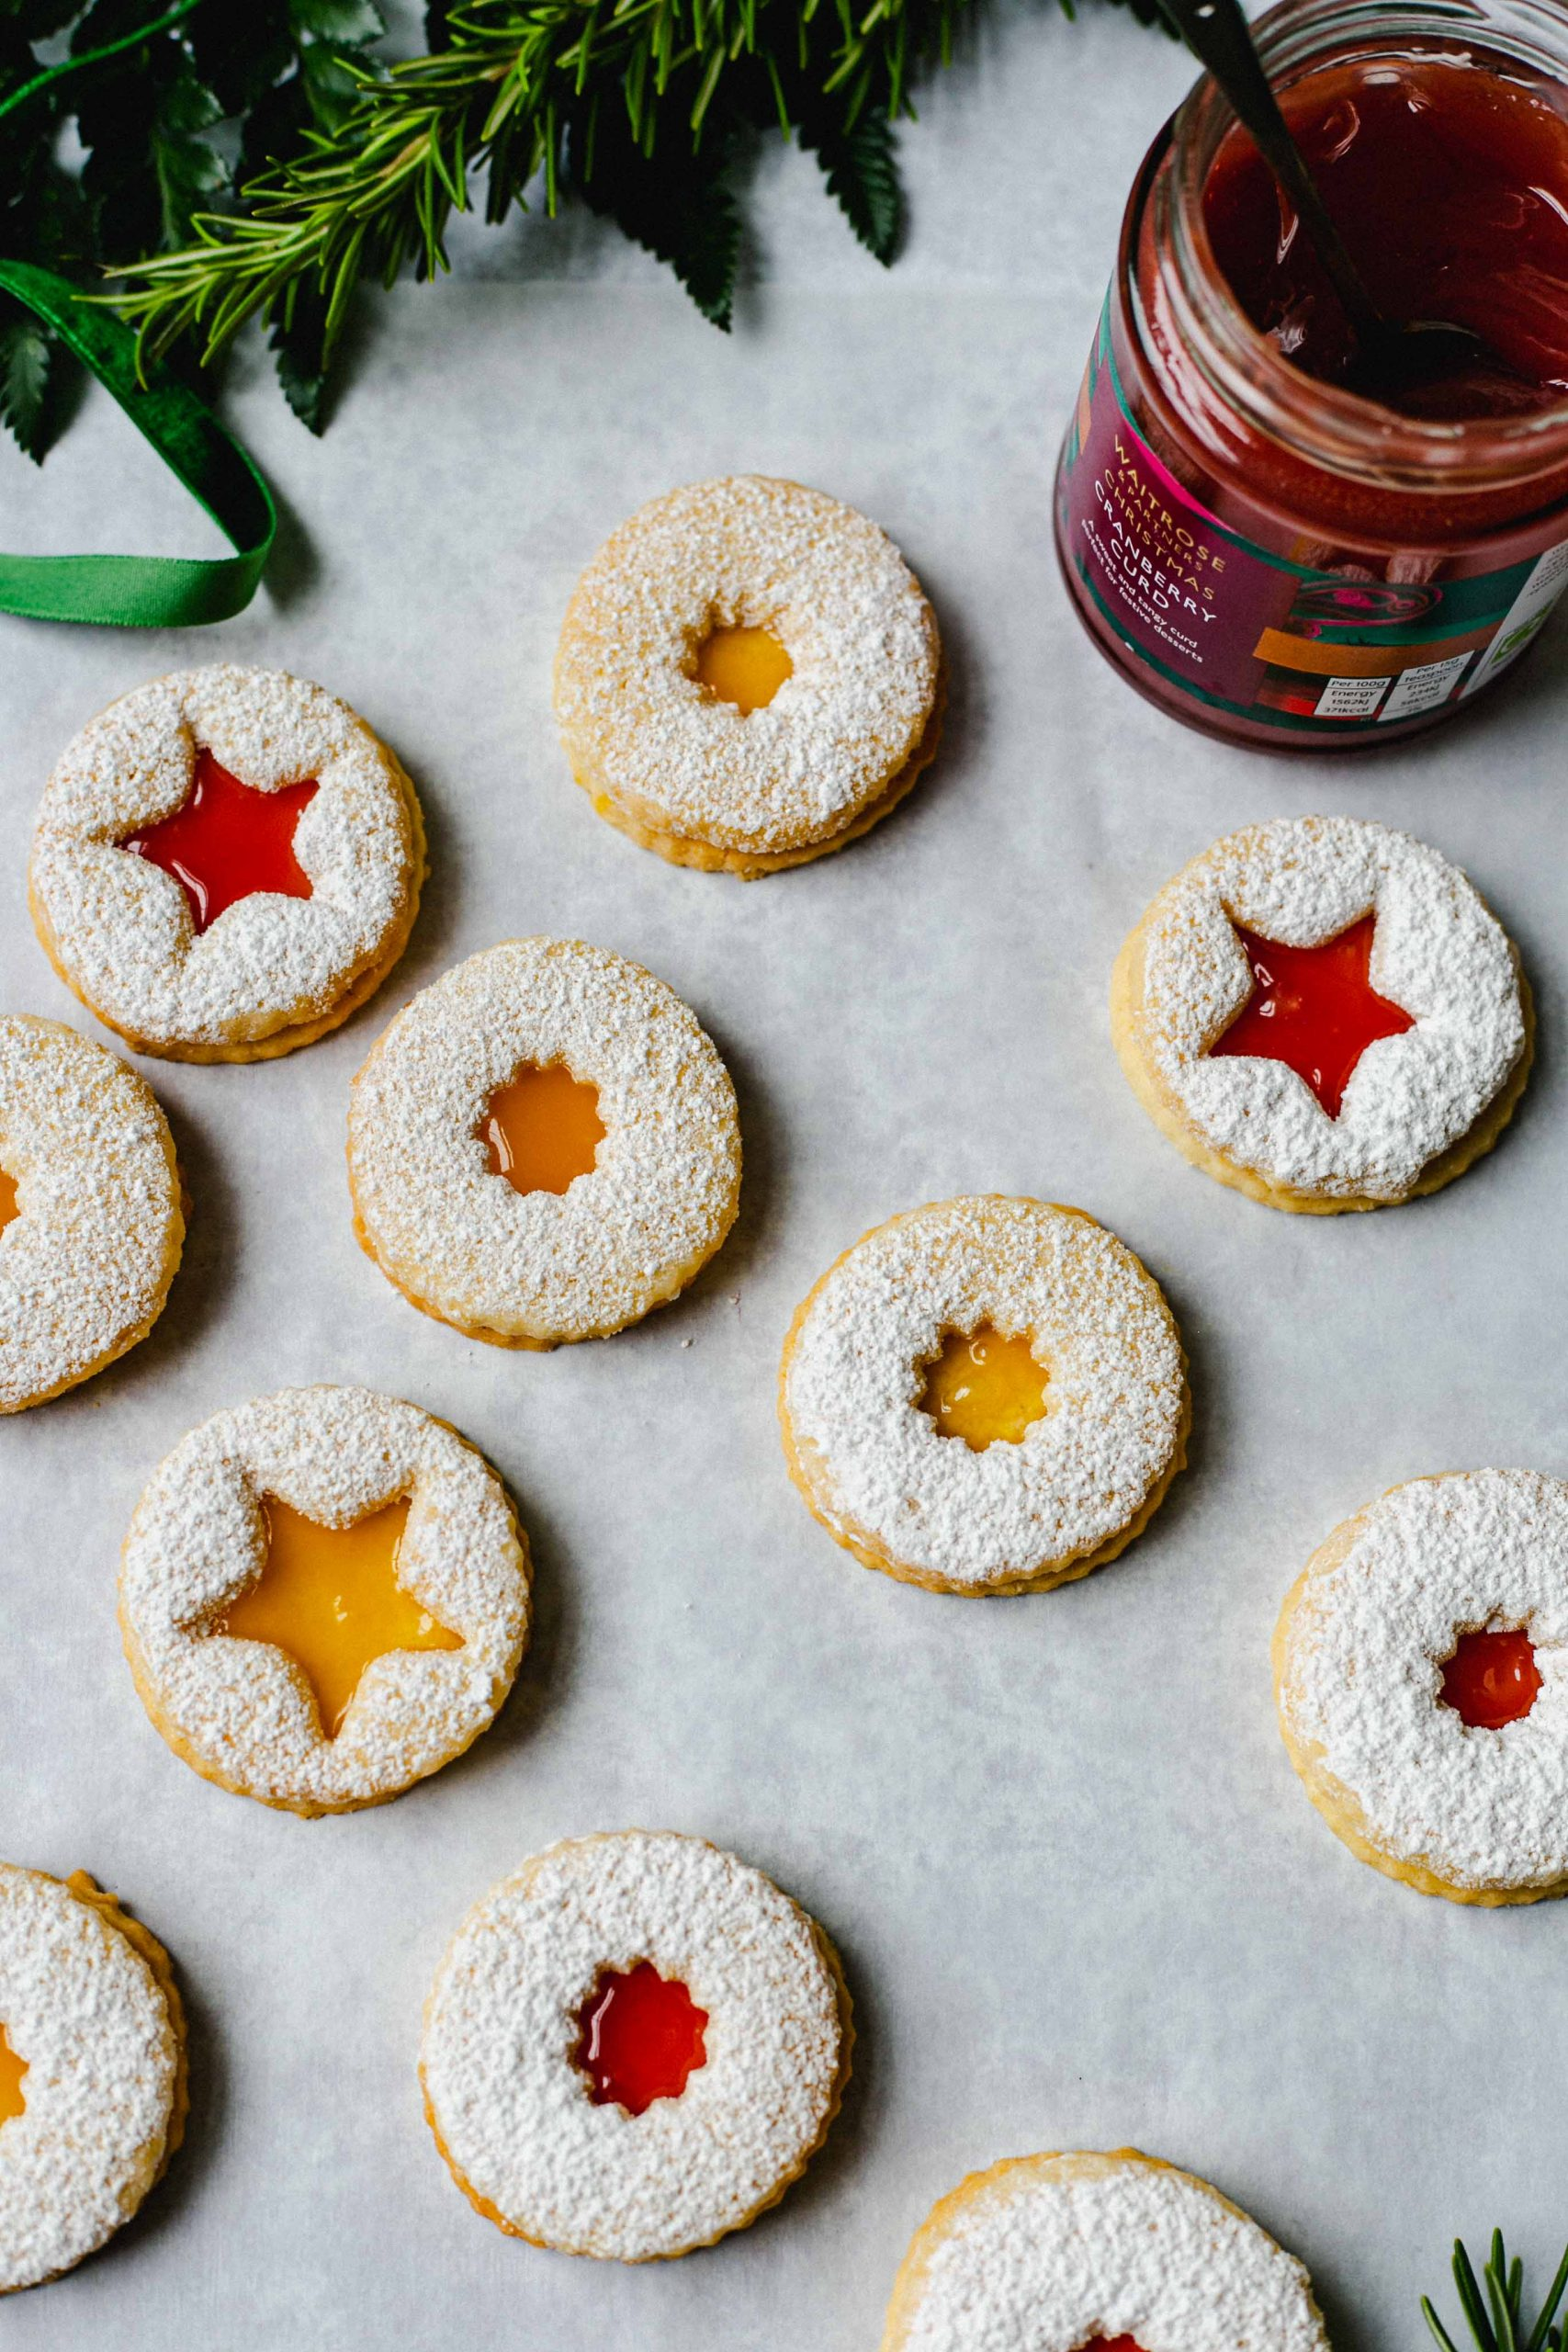 Gluten free Linzer cookies with curd Low FODMAP